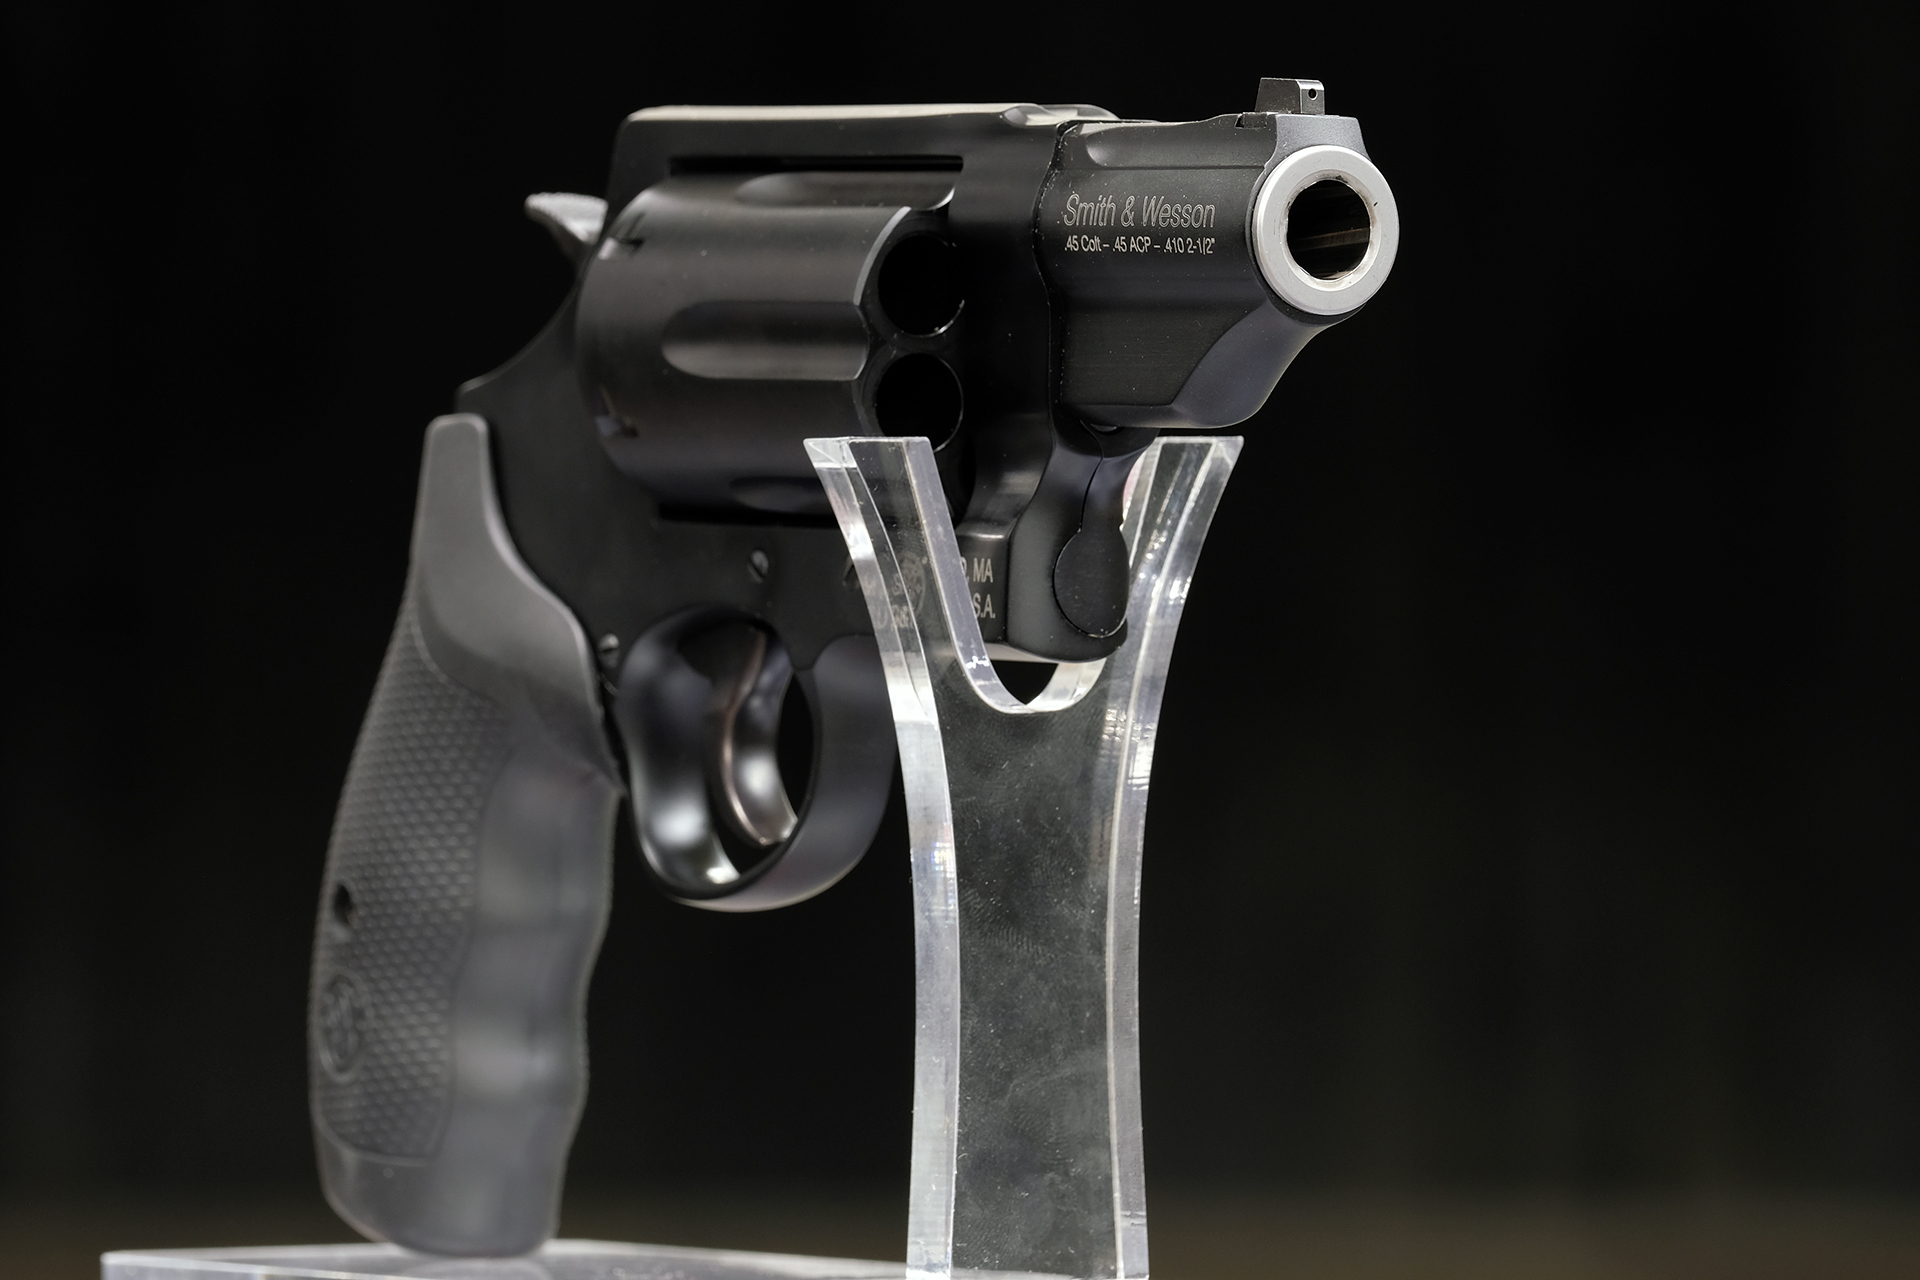 S&W Modell GOVERNOR – RENE HILD TACTICAL